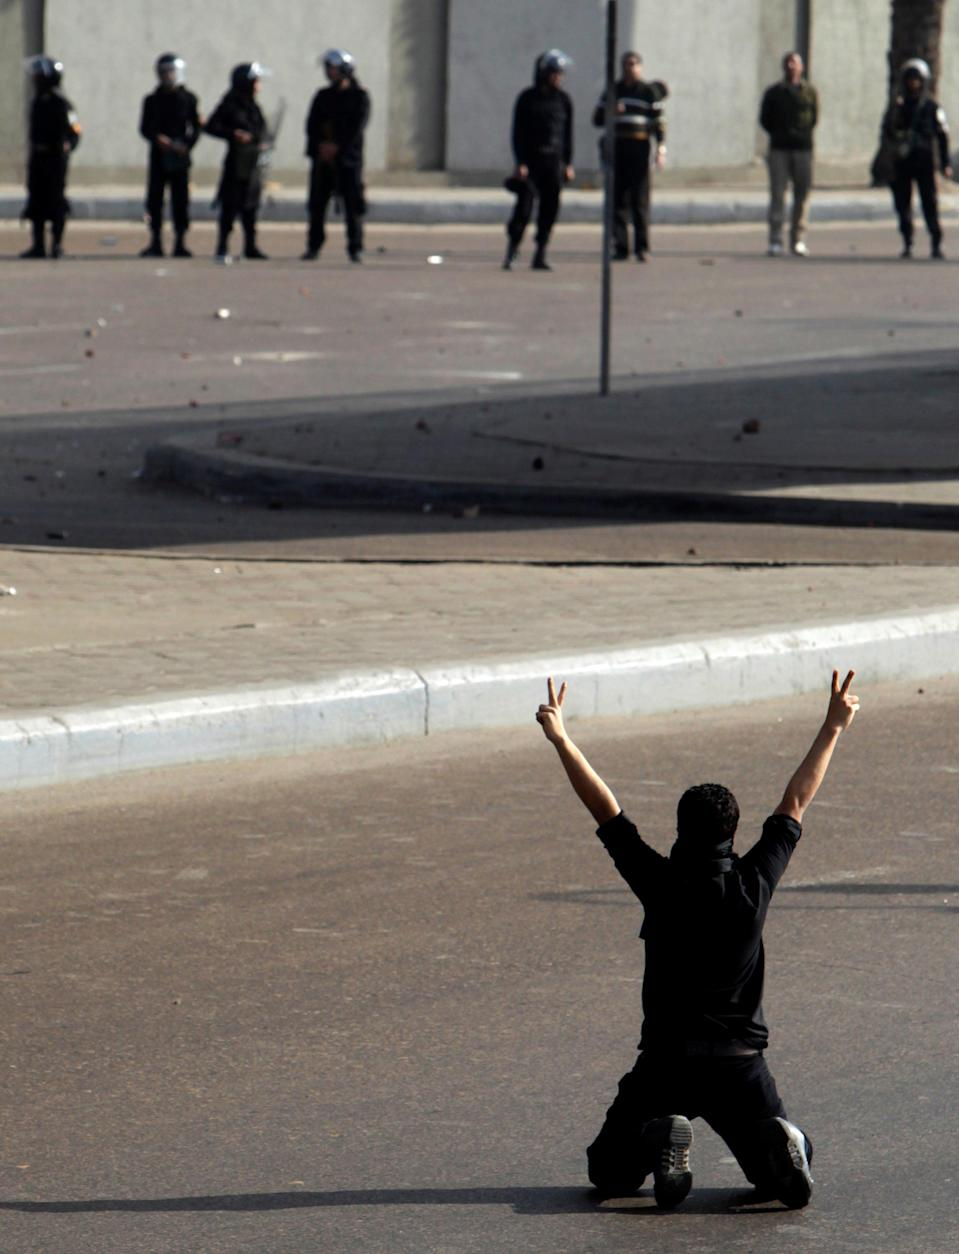 A protester flashes a victory sign in front of police during clashes in Cairo in January 2011REUTERS